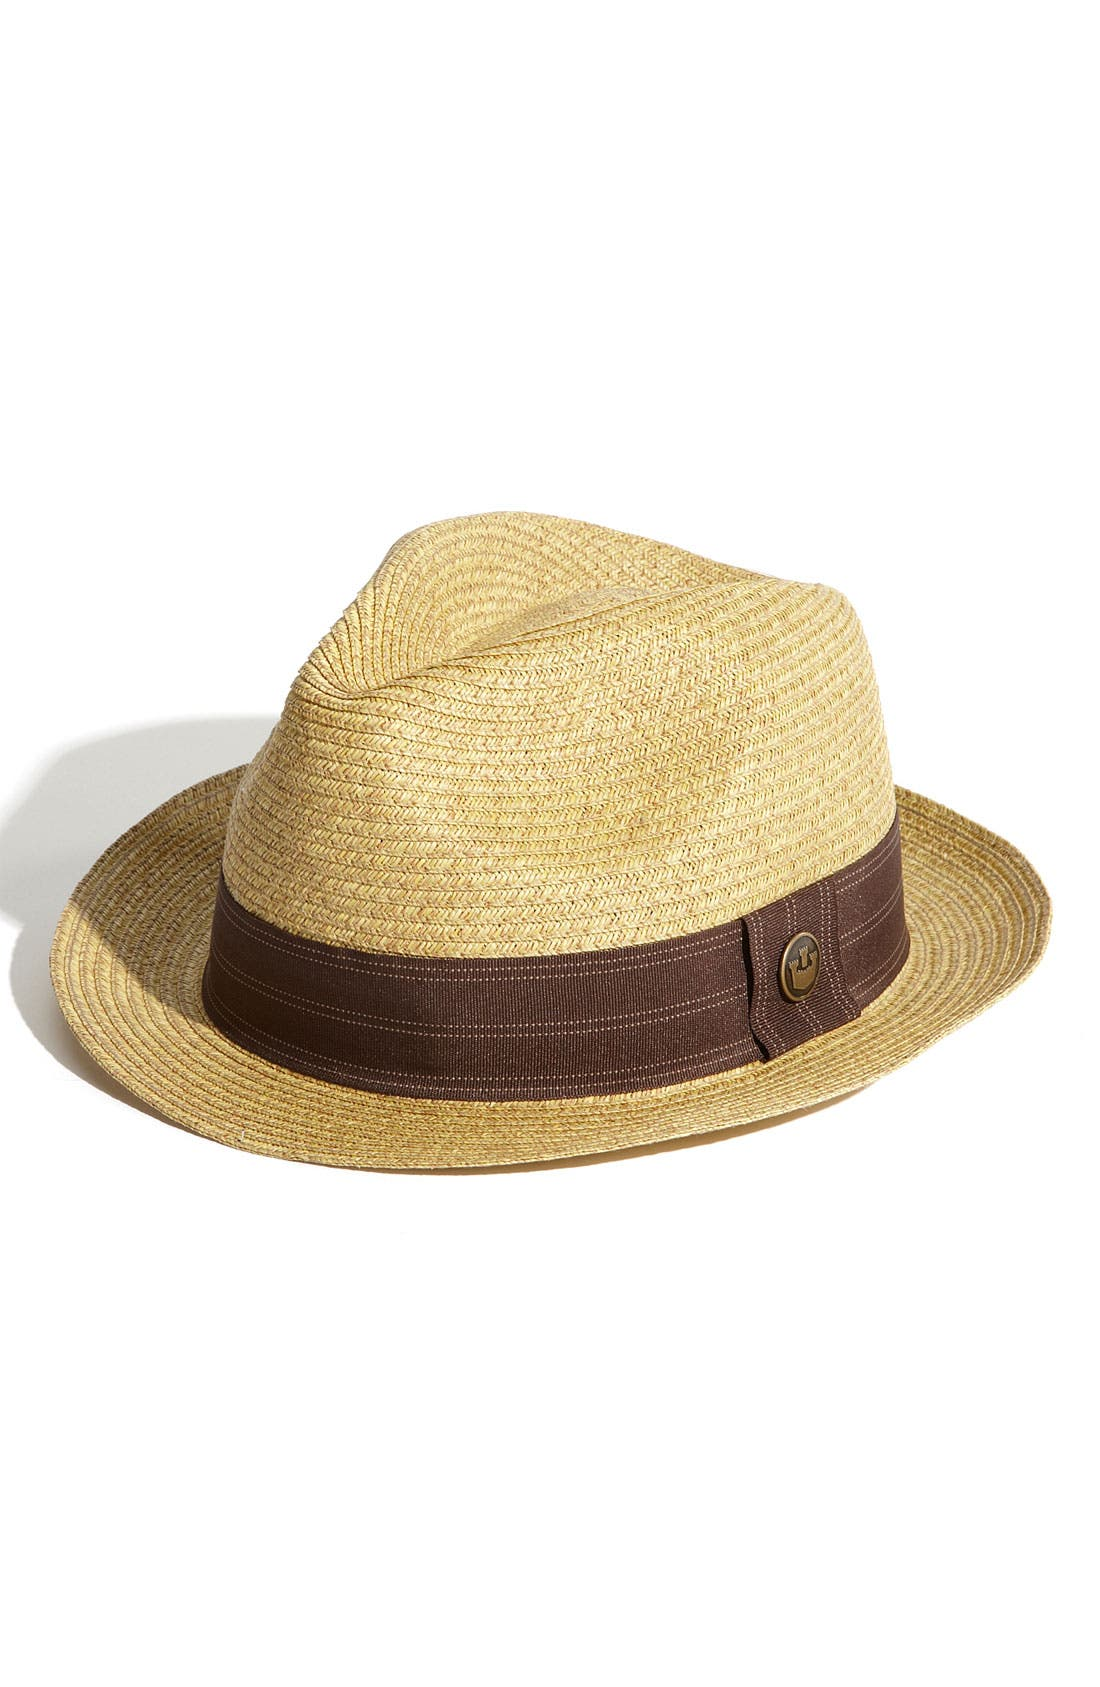 Main Image - Goorin Brothers 'Fields' Fedora